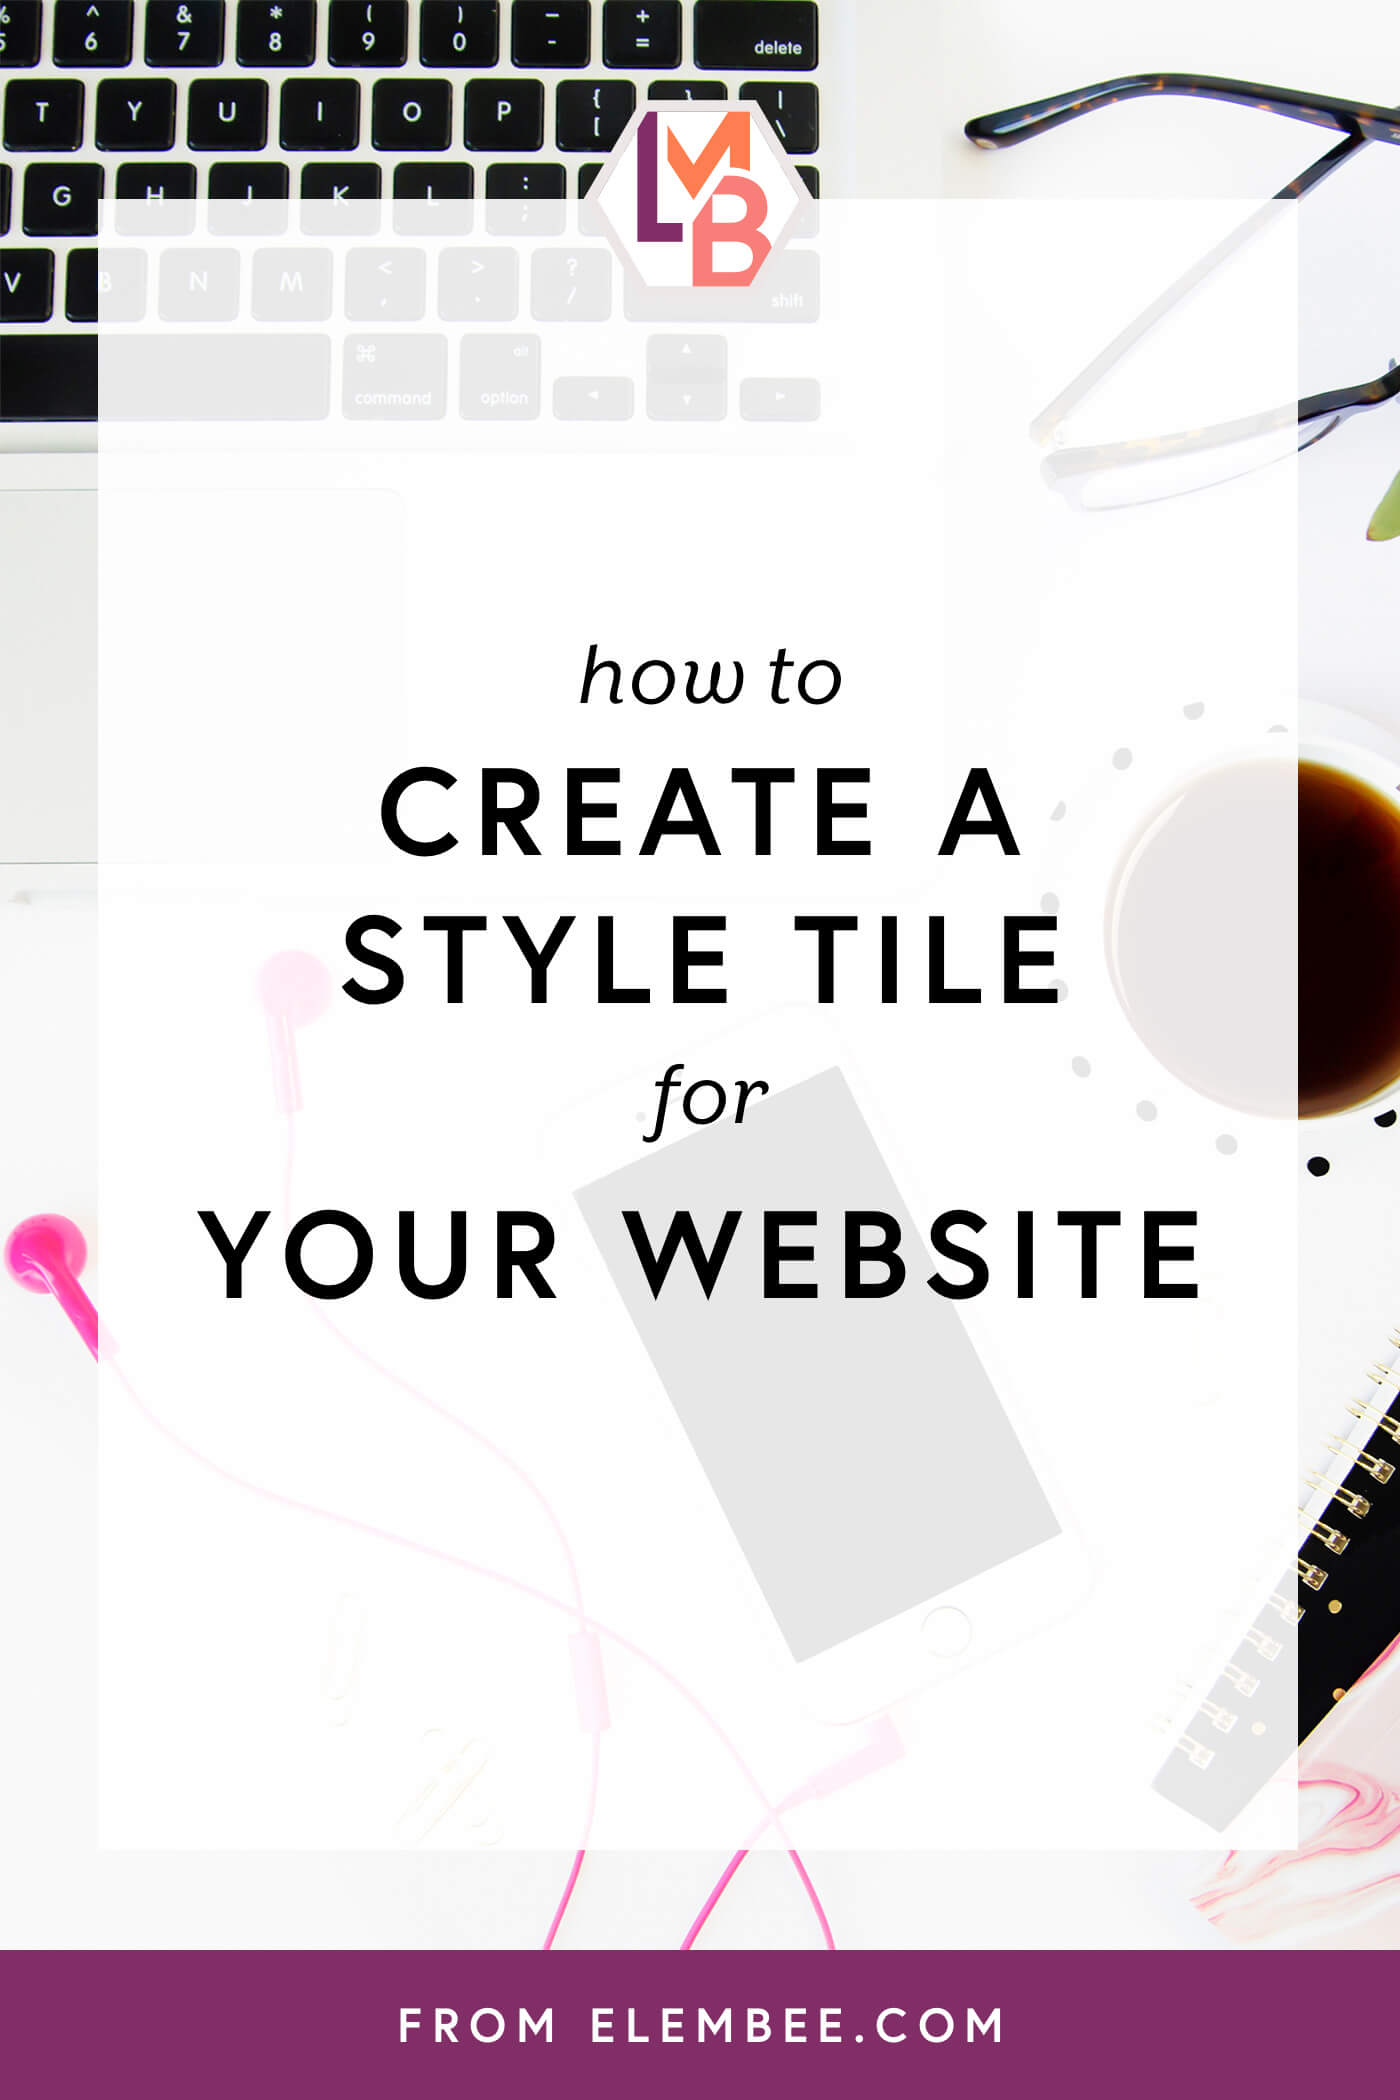 How to create a brand board or style tile for your website